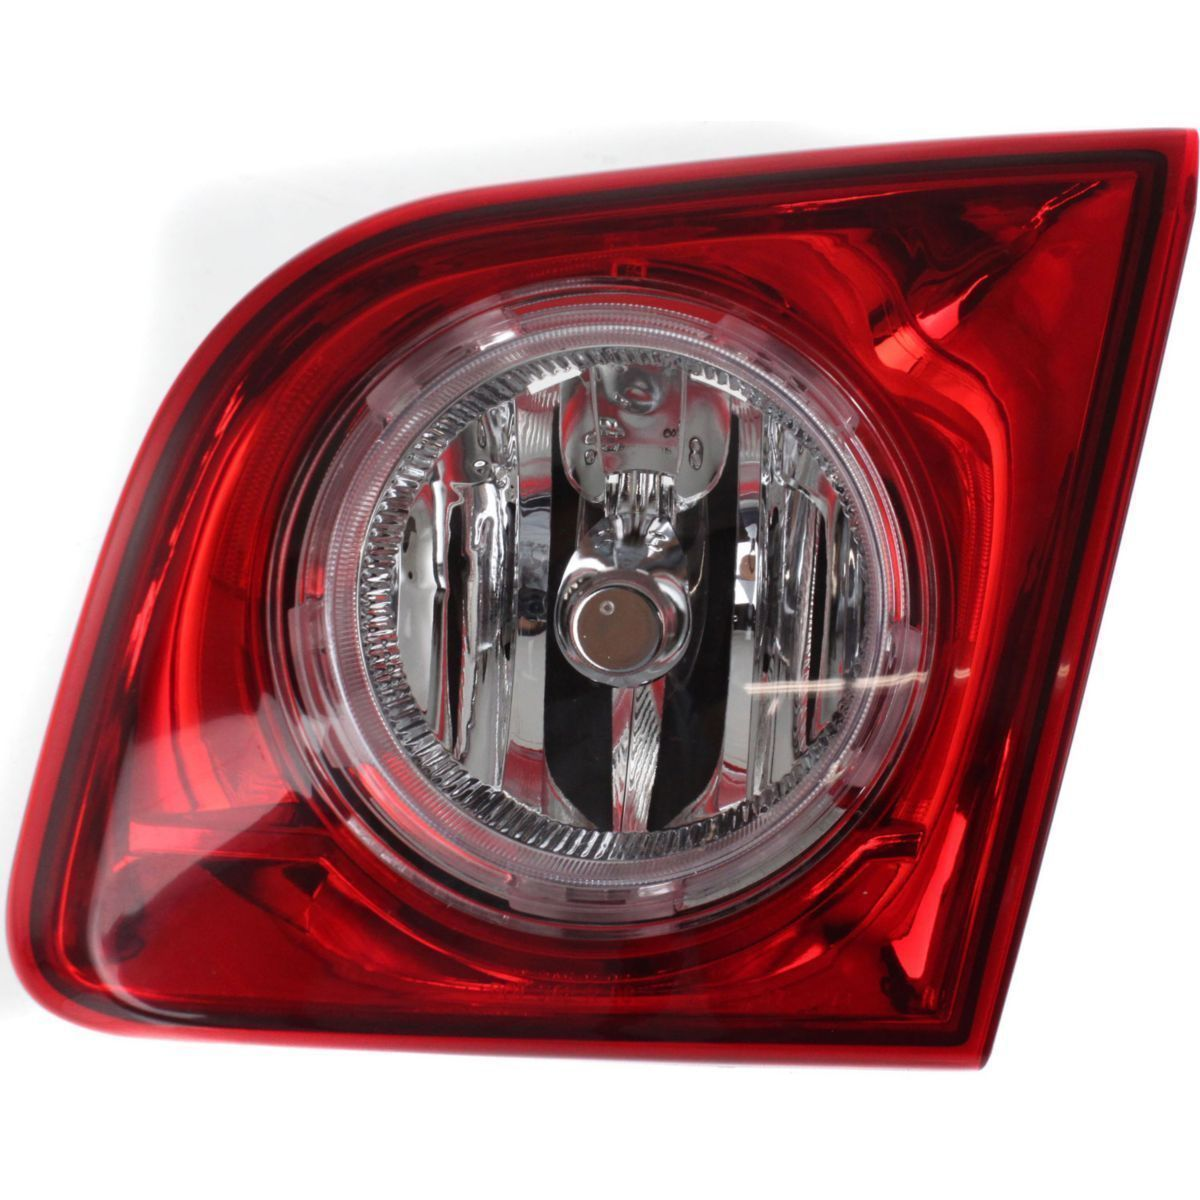 Chevrolet Malibu Sedan 2008 2009 2010 2011 2012 tail light inner right passenger